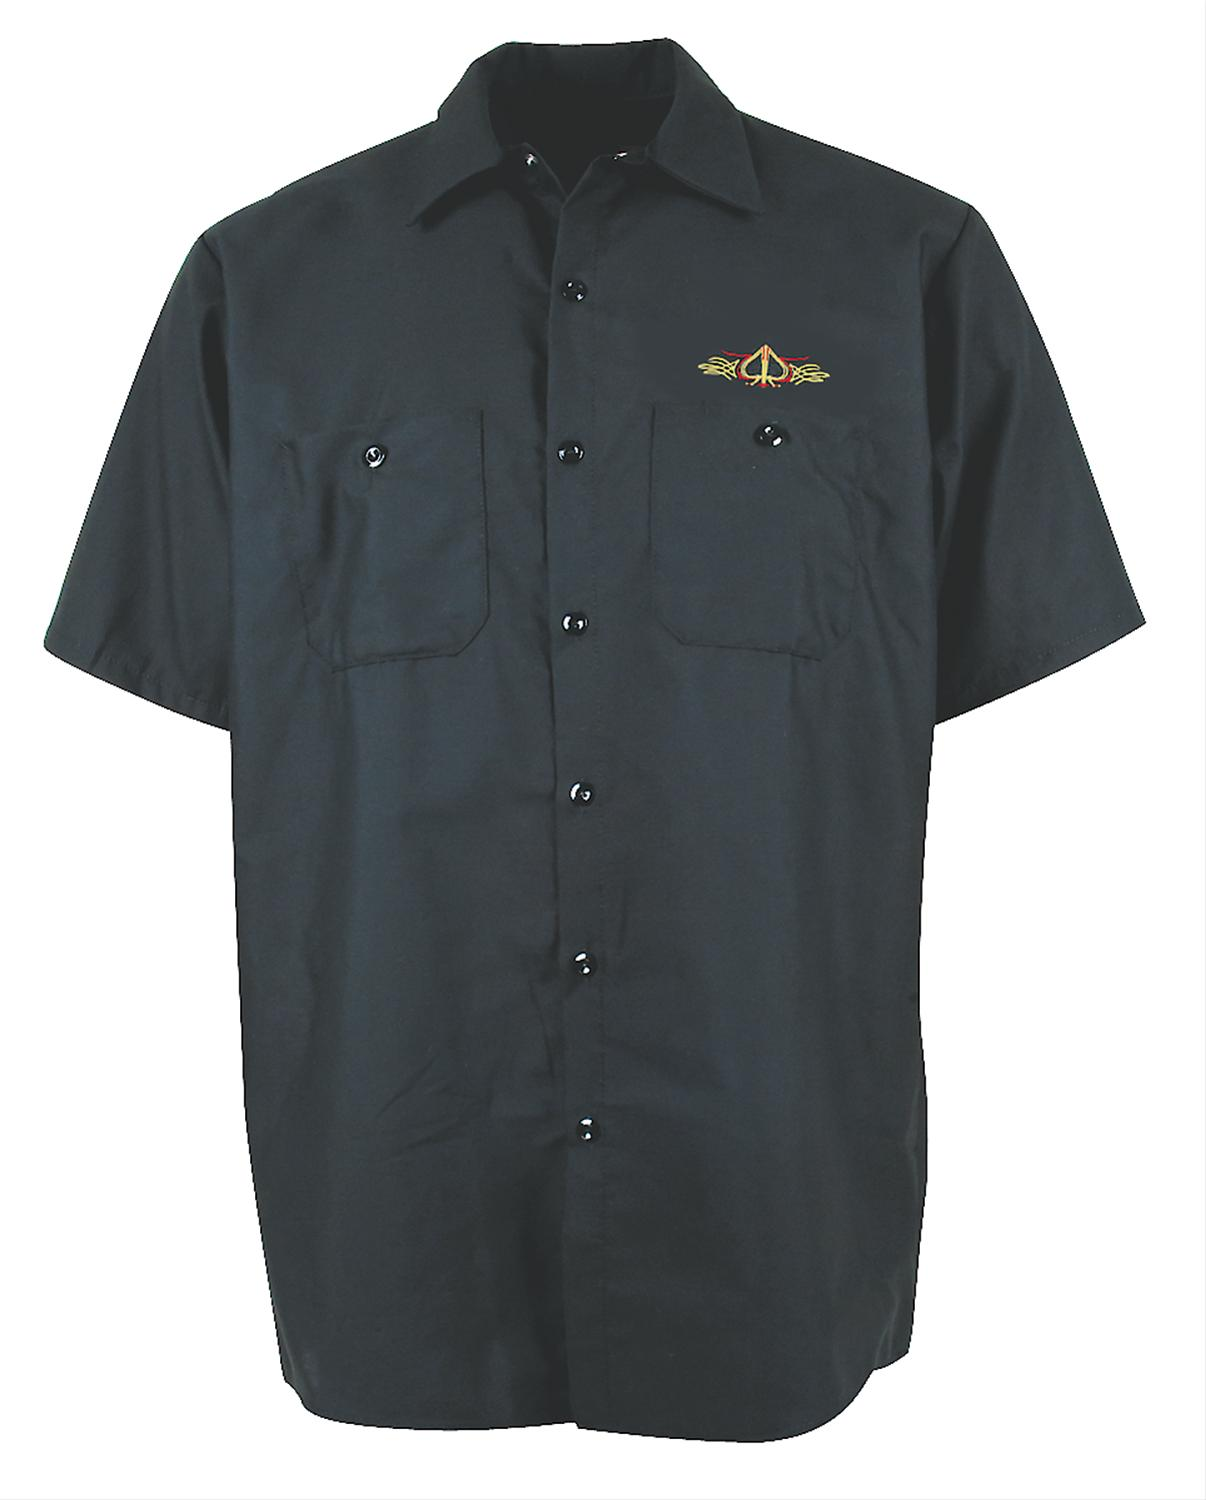 Ghh Work Shirt Button Down Cotton Polyester Pinstripped